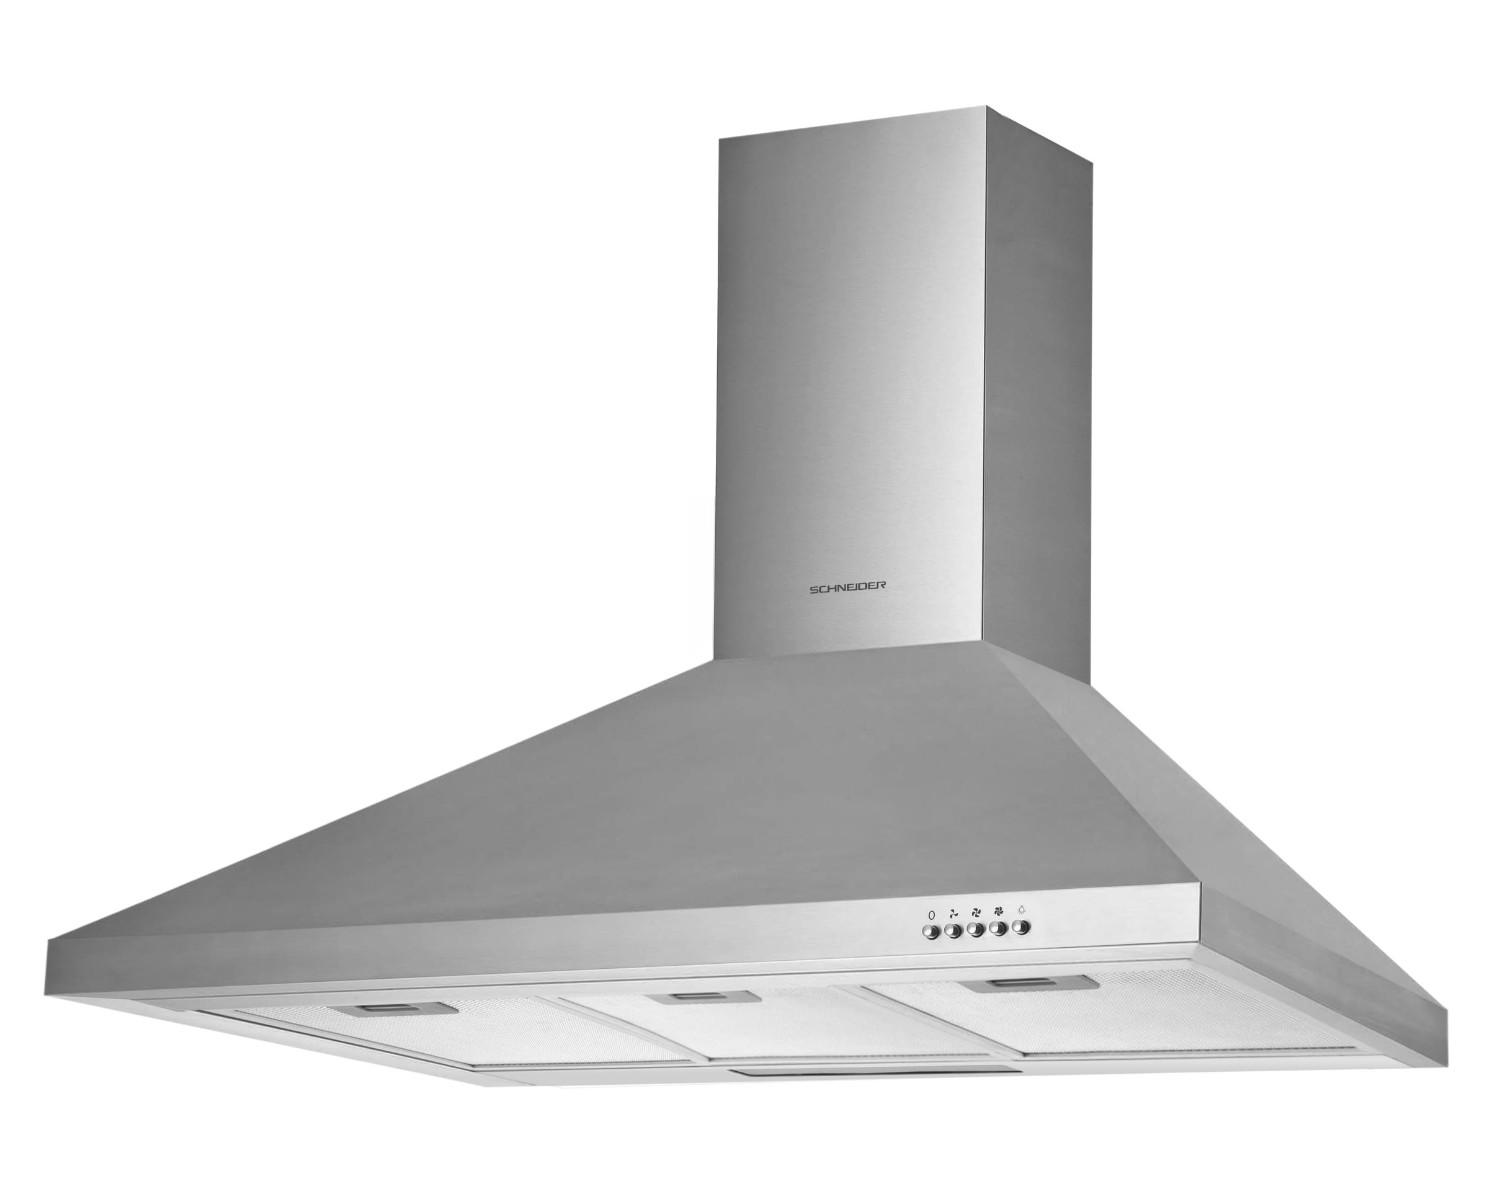 Pyramid wall-mounted extraction hood 90 cm - Schneider